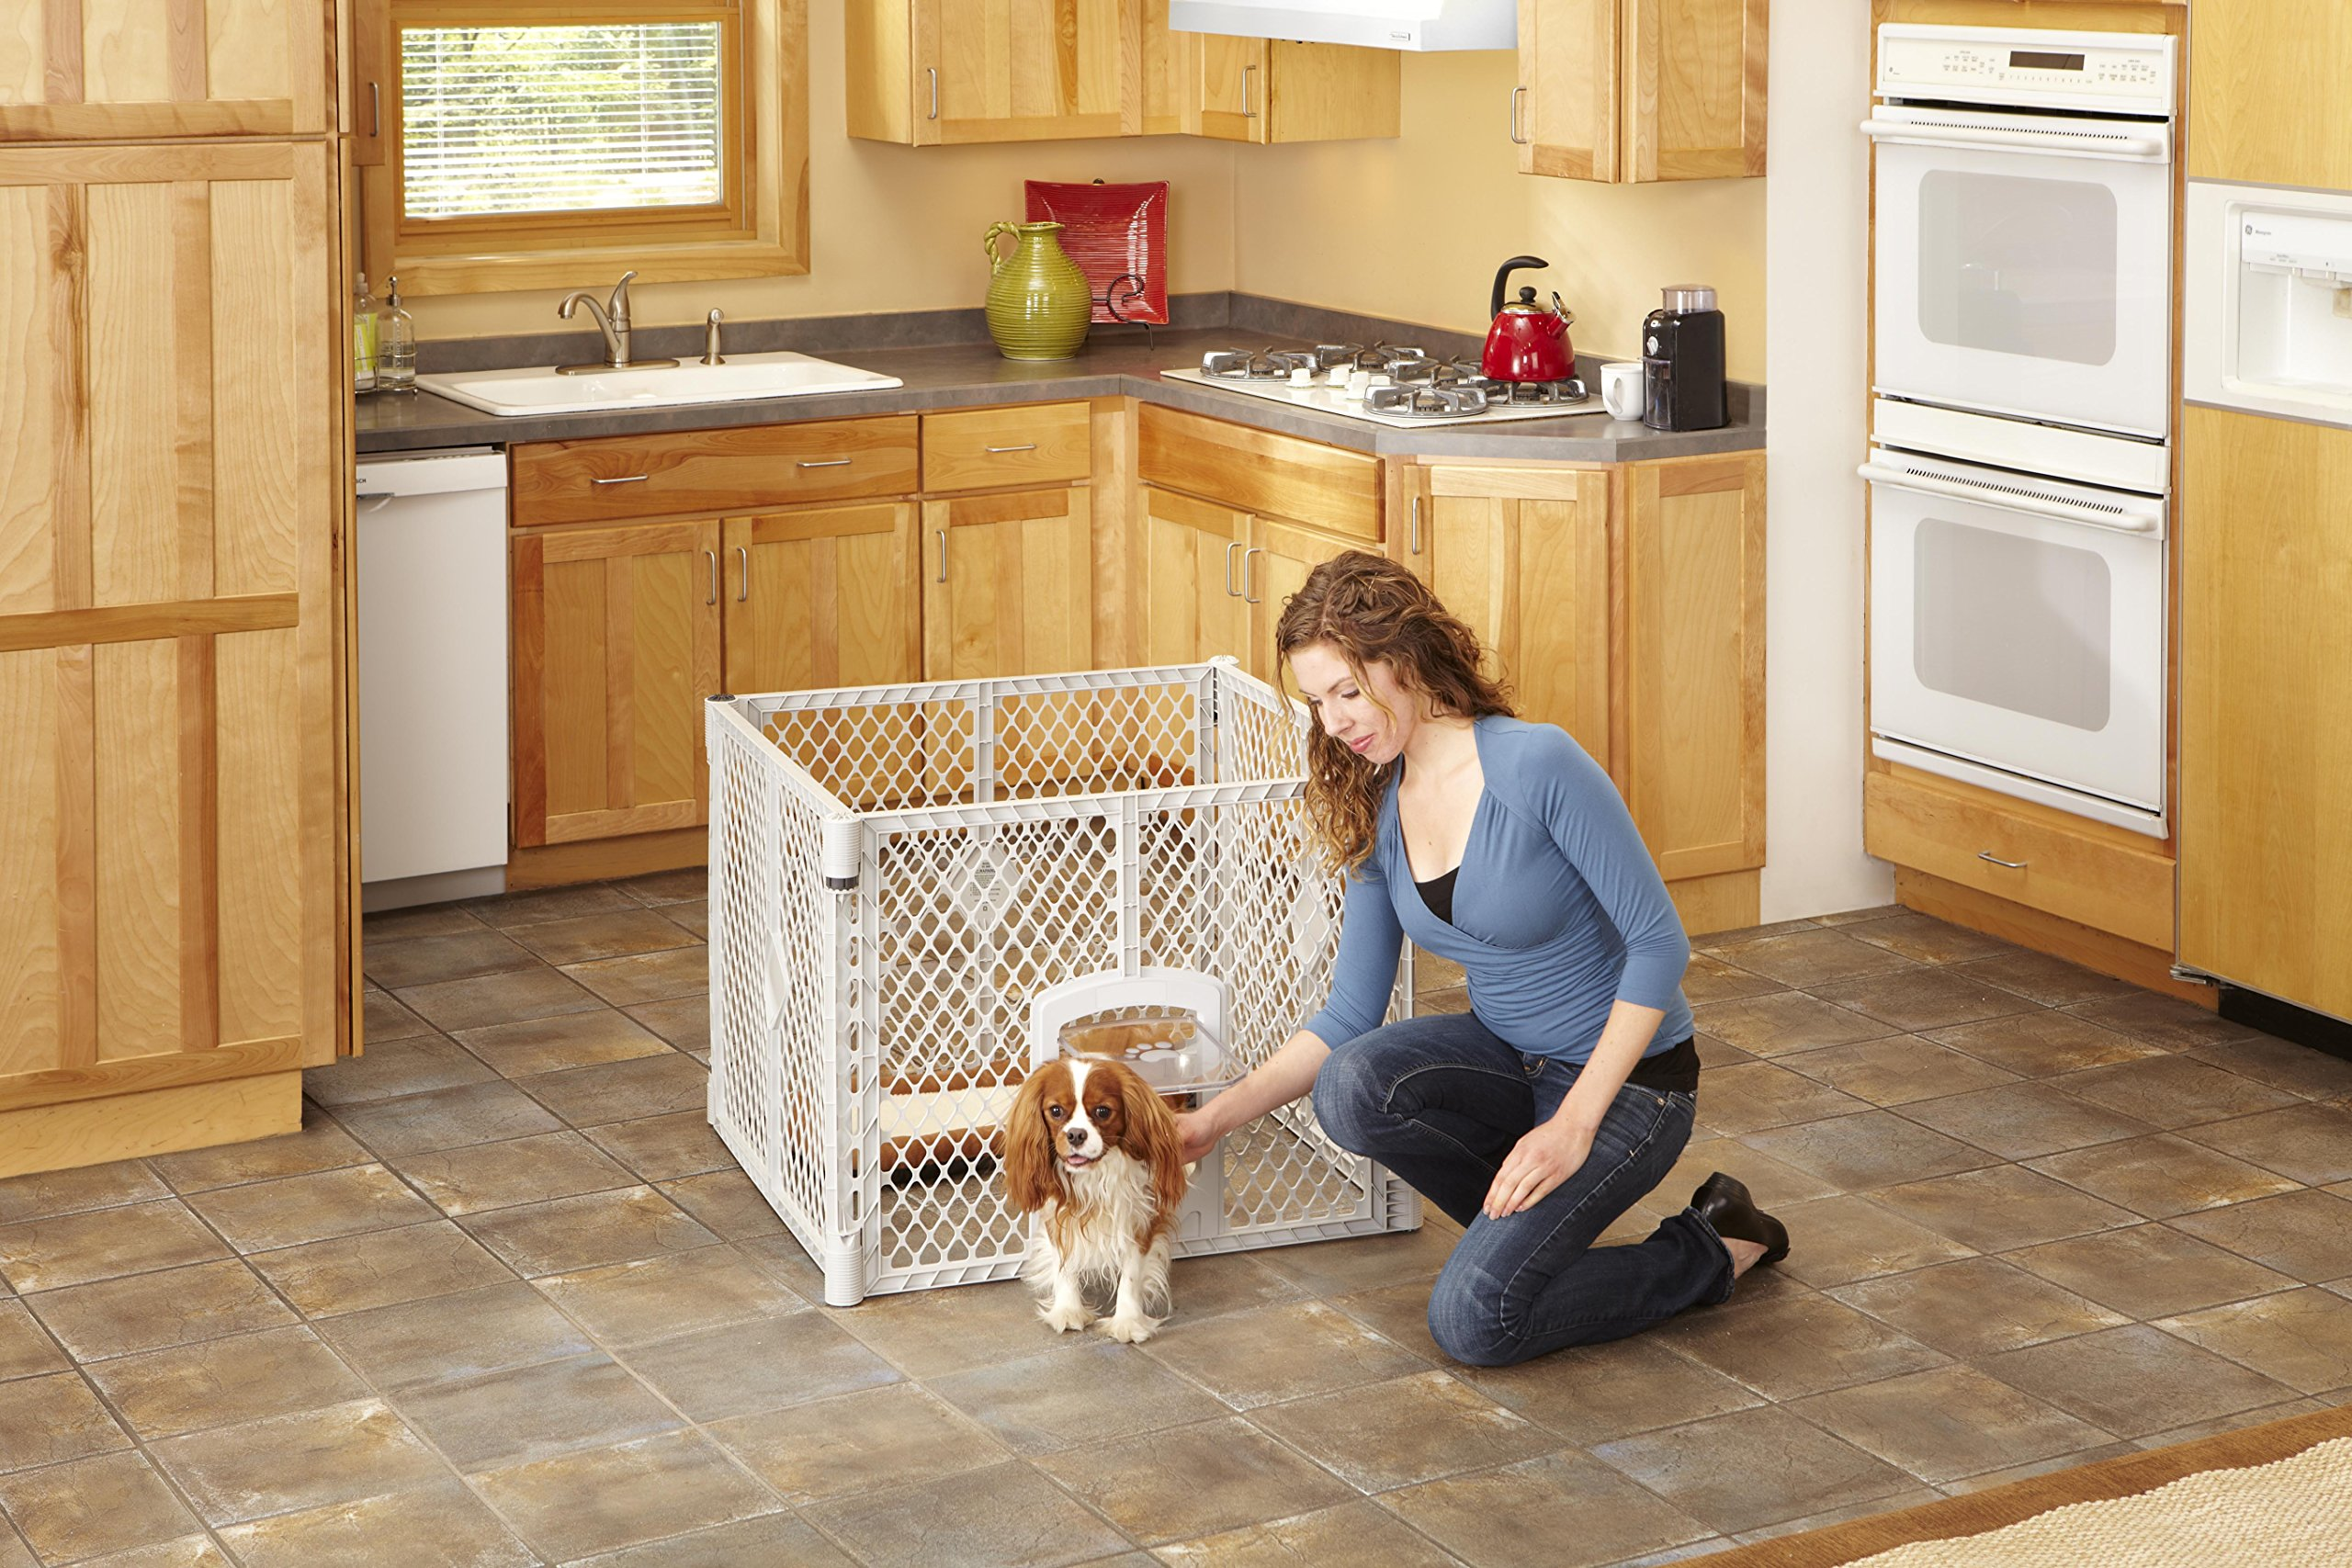 North States MyPet 18.5 Sq. Ft. Petyard Passage: 6-panel pet enclosure with lockable pet door. Freestanding, 7 sq. ft. - 18.5 sq. ft. (26'' tall, Light gray) by North States Pet (Image #4)